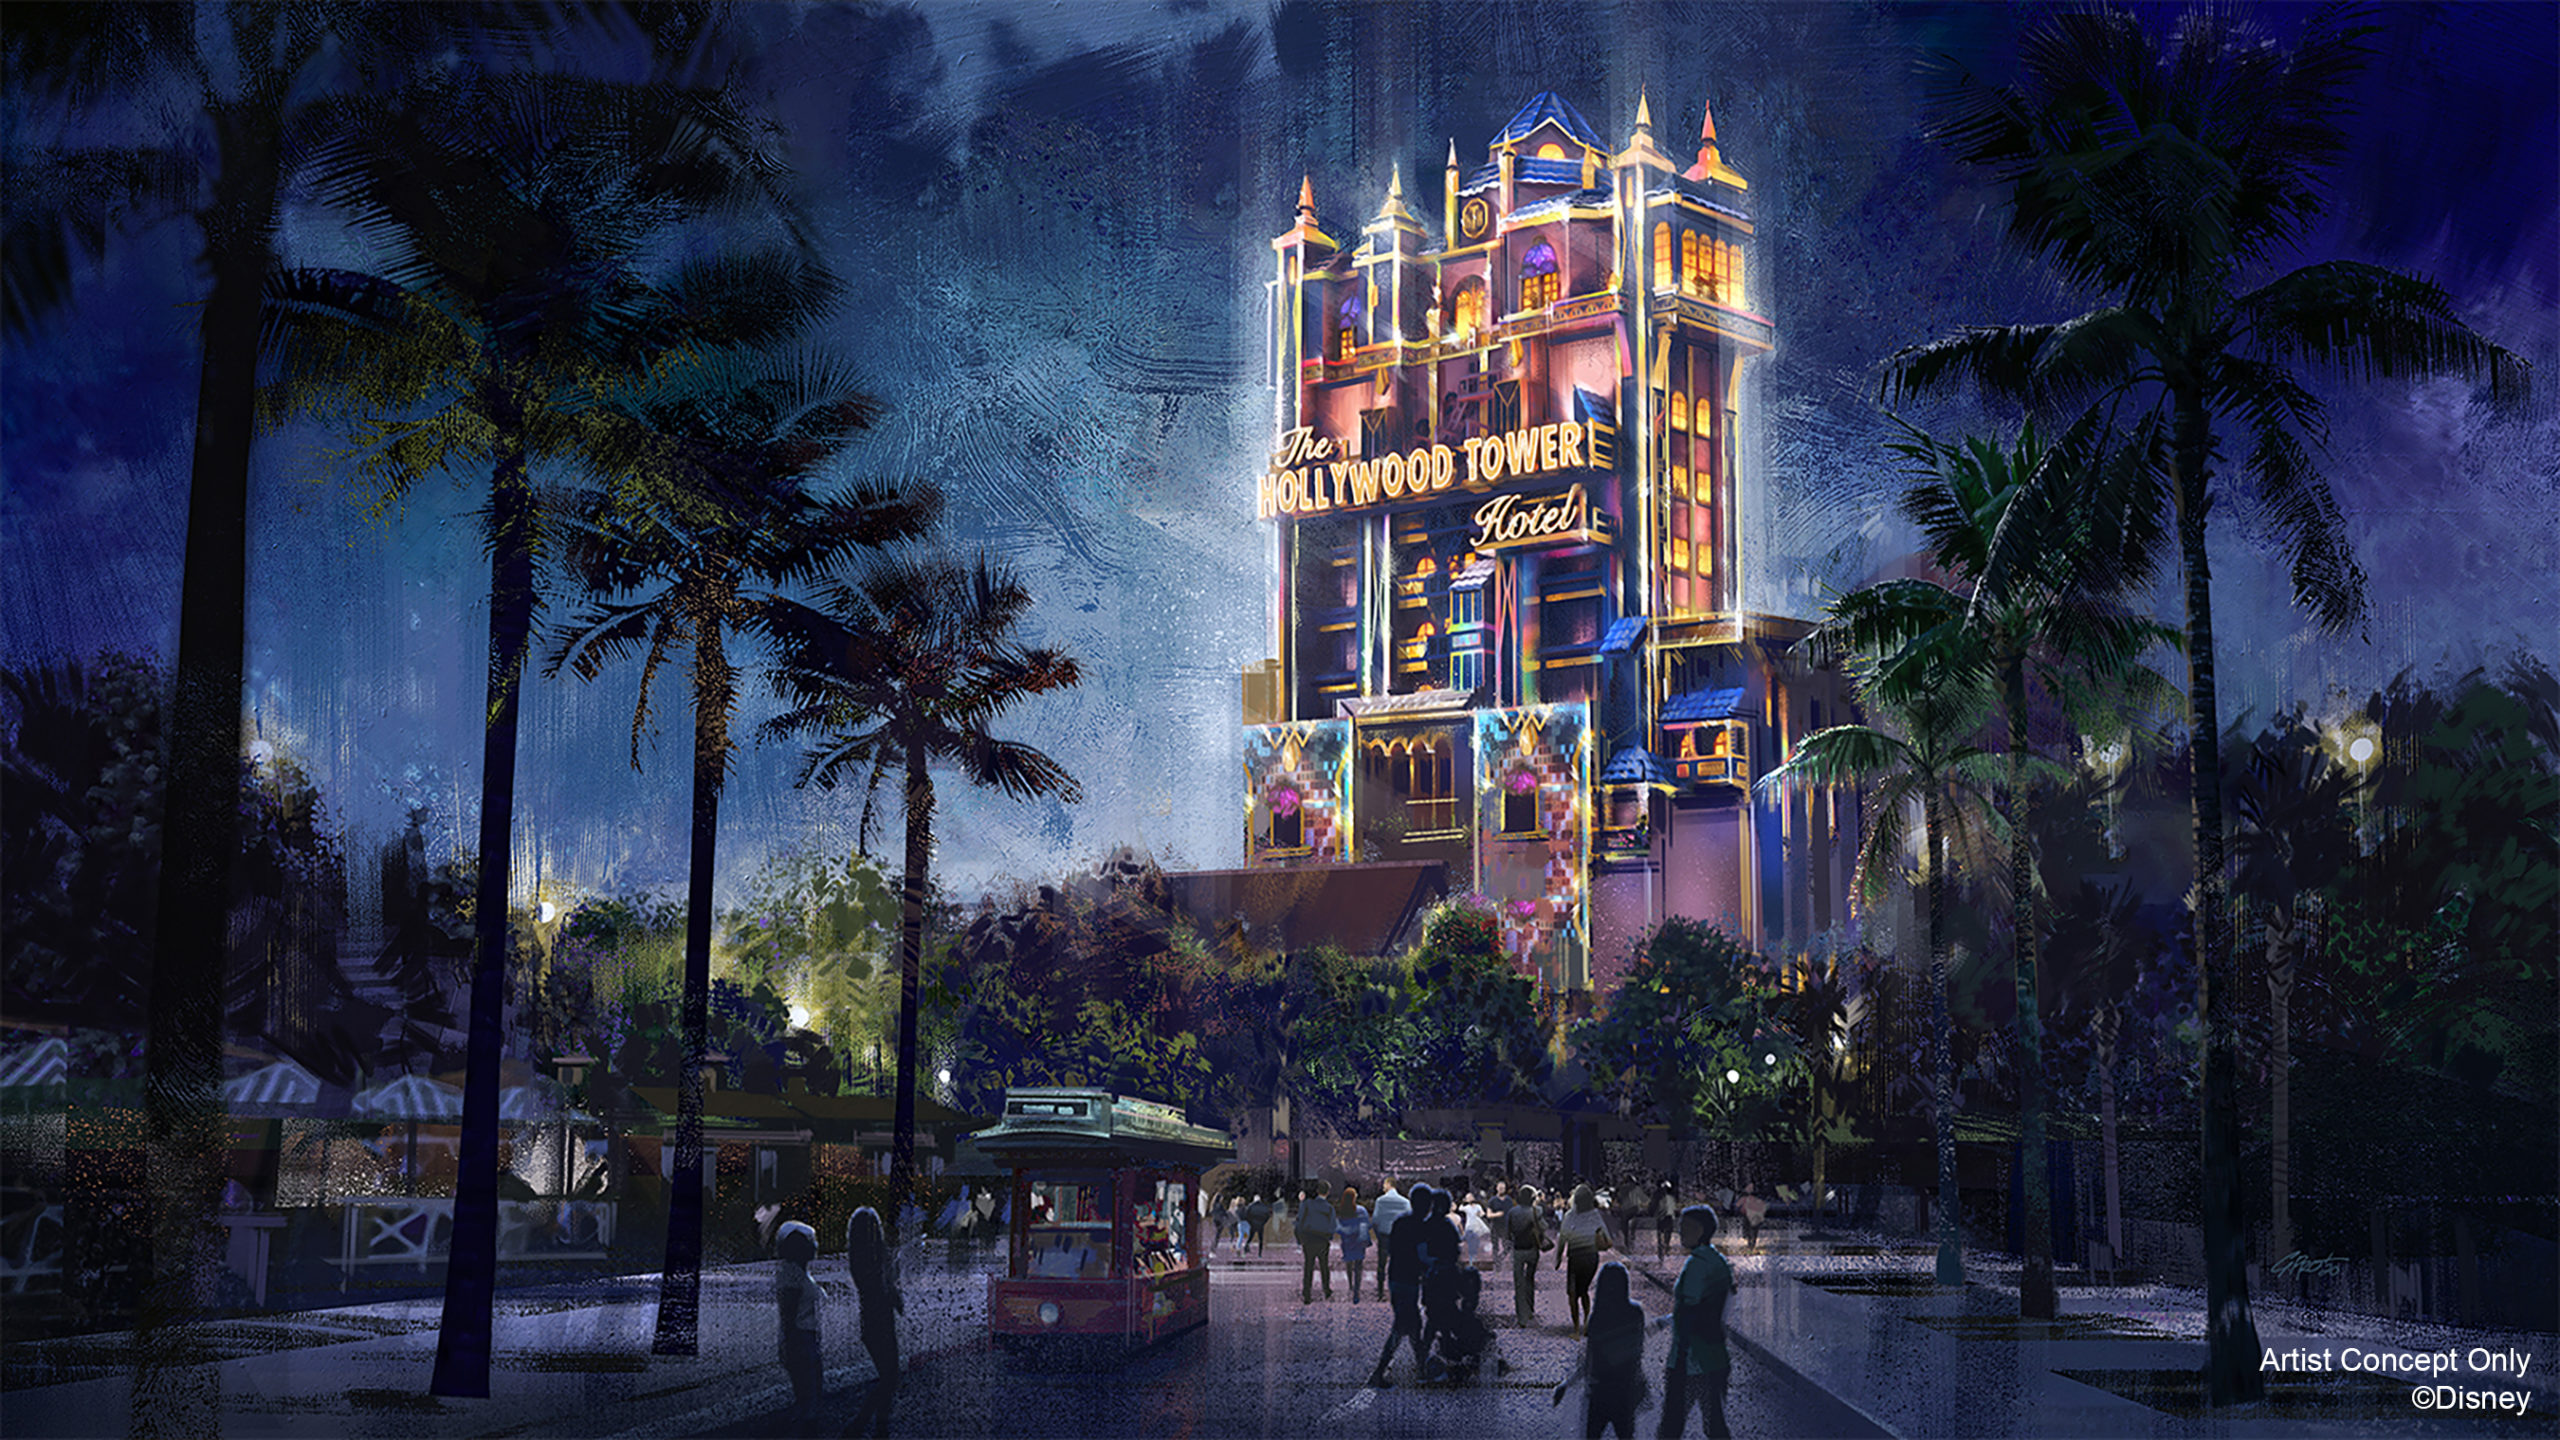 Hollywood Tower Hotel becomes a Beacon of Magic in Disney's Hollywood Studios